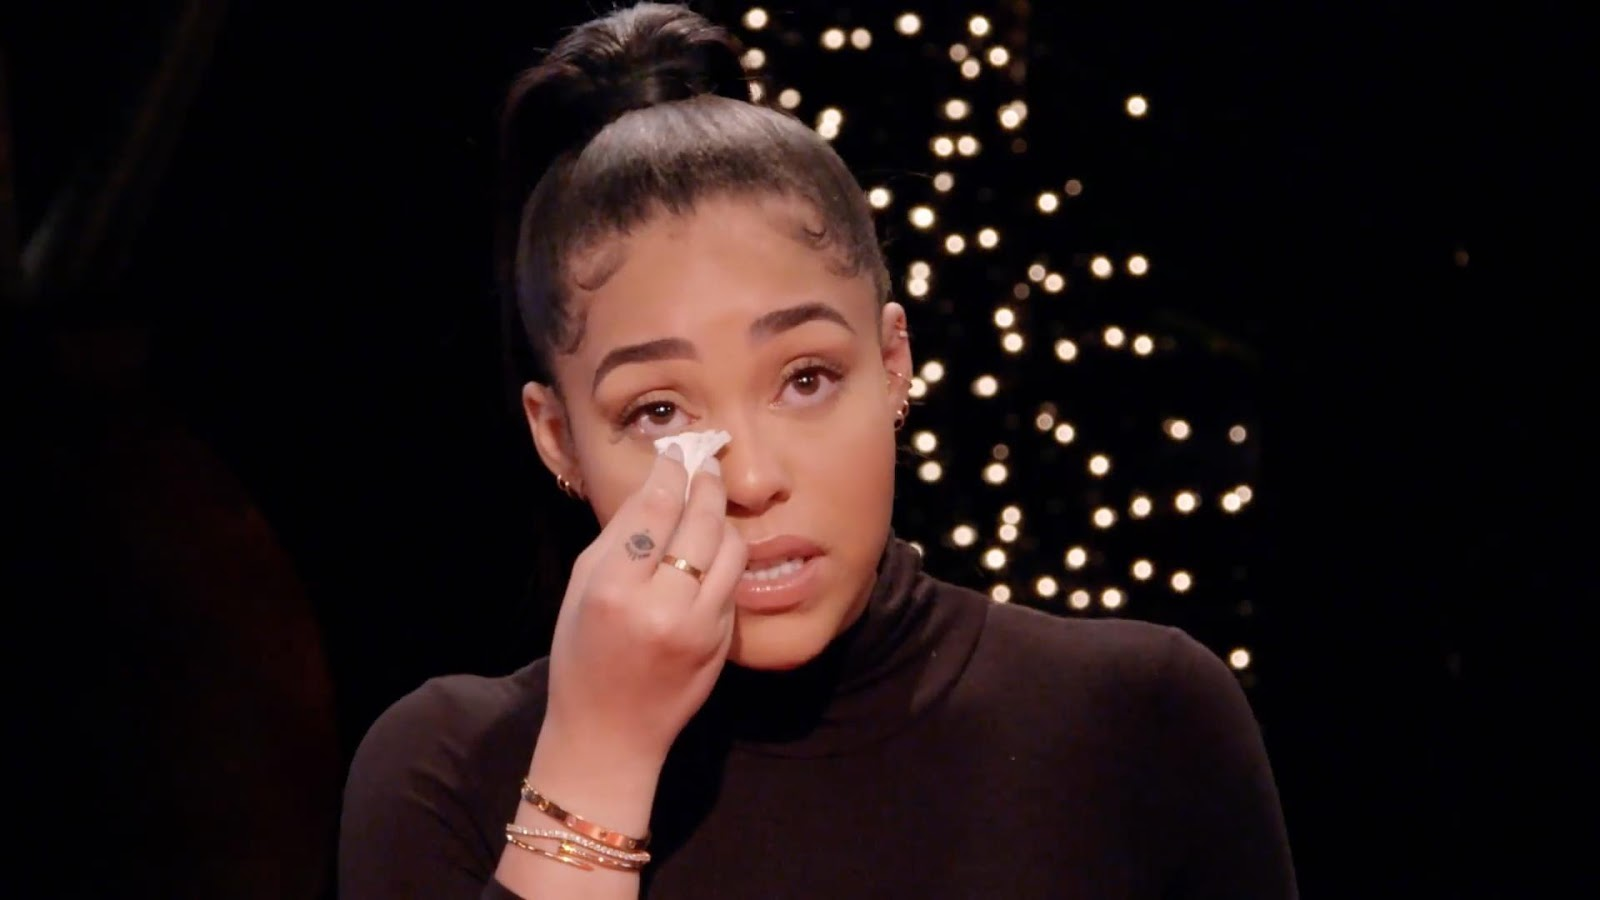 Jordyn Woods tearfully admits Tristan Thompson DID kiss her but declares she is 'no homewrecker' on Jada Pinkett Smith's Red Table Talk after his split from Khloe Kardashian